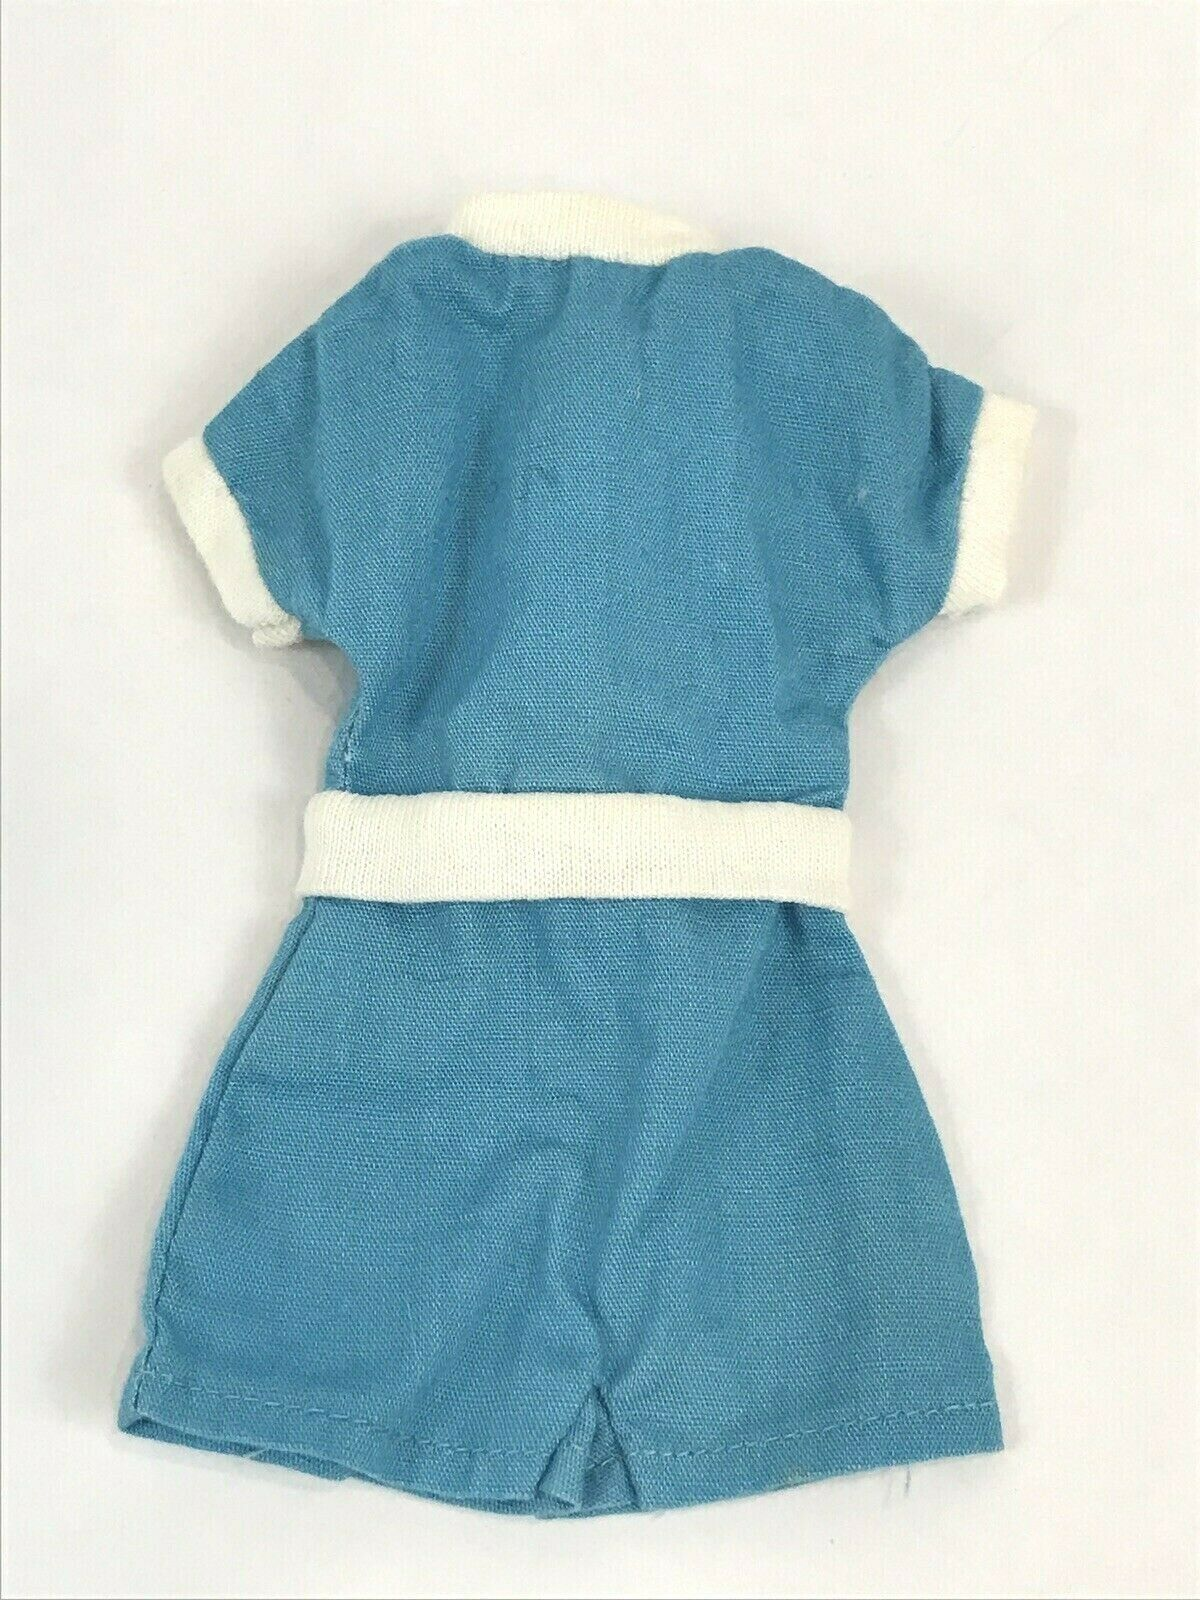 Vintage Ideal Tammy Doll Clothes Blue White Romper Shorts Original Outfit - $9.89